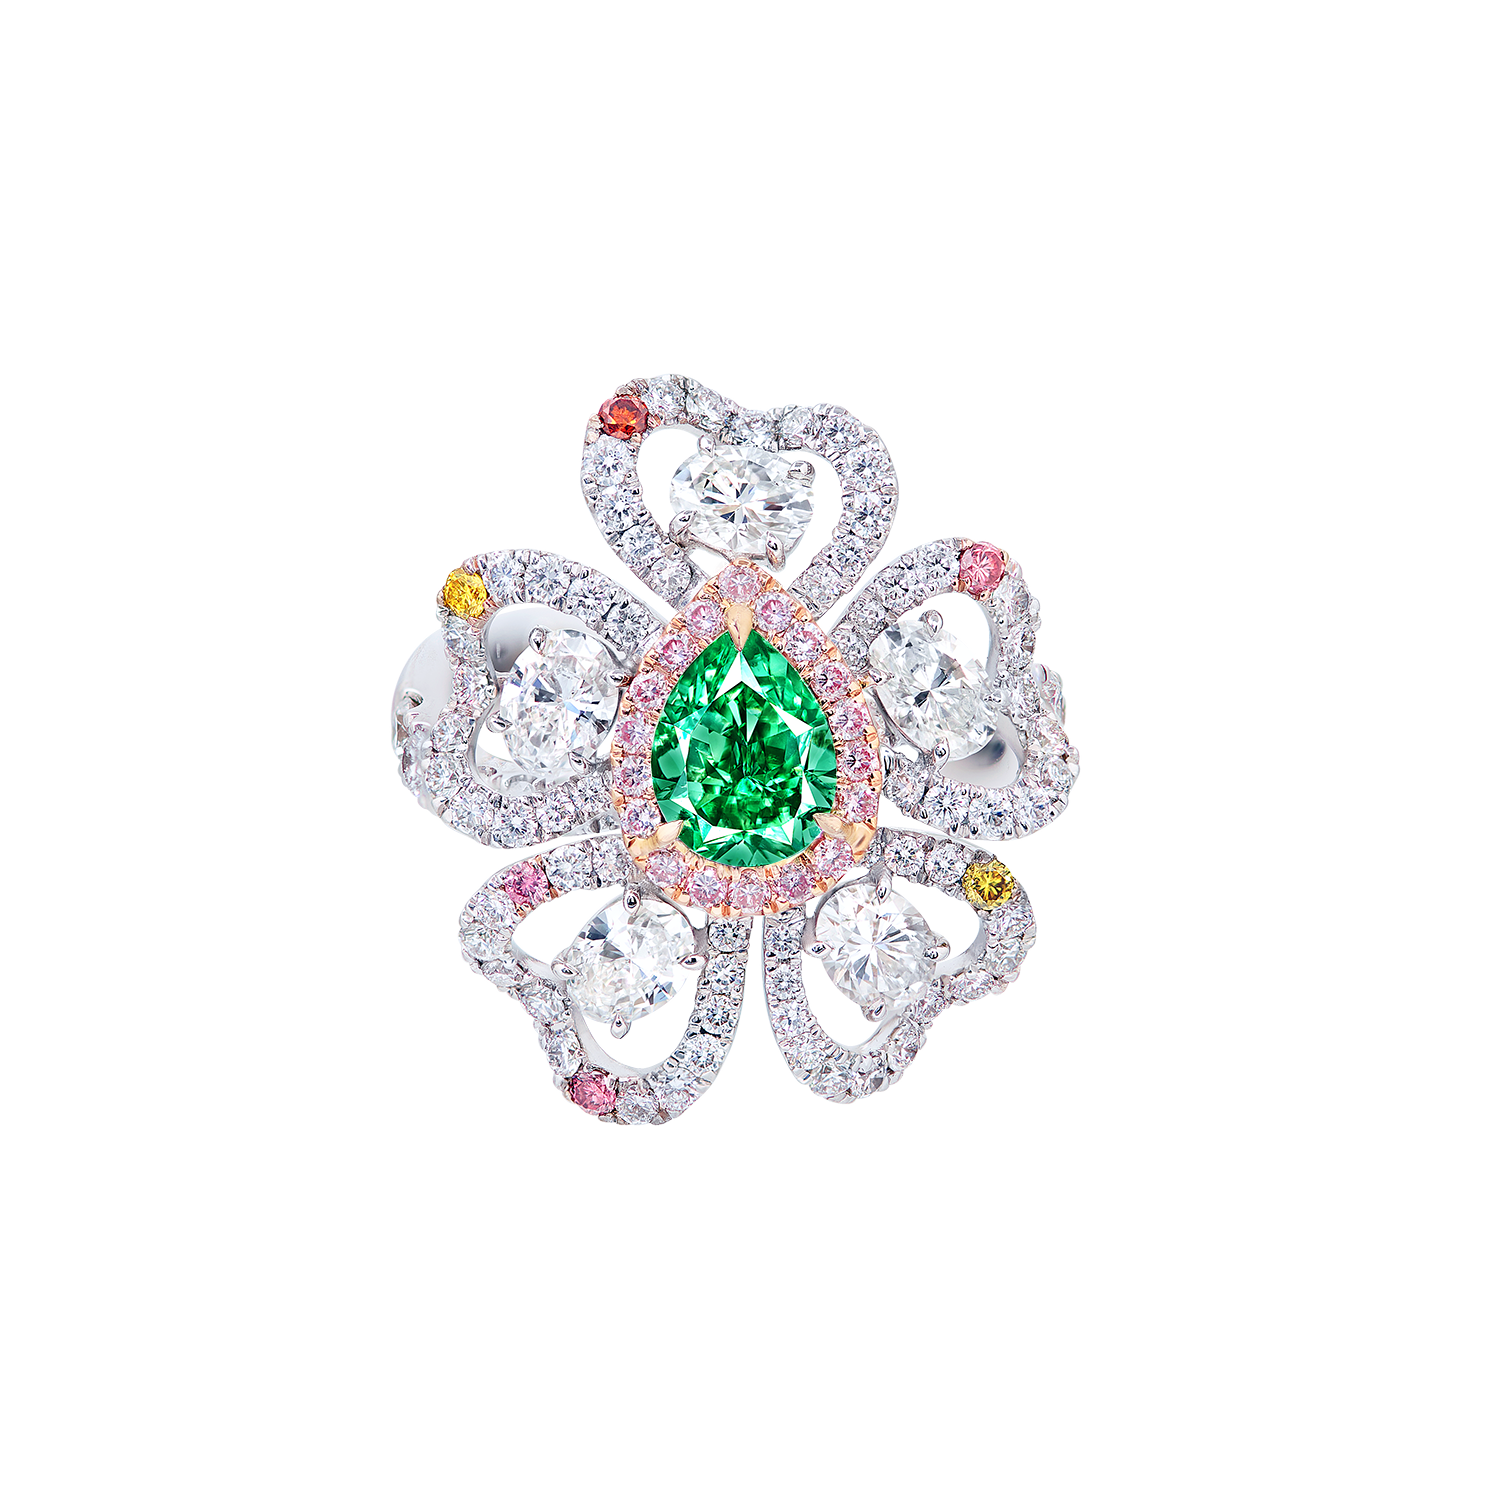 GIA 1.05克拉 艷彩藍綠彩鑽鑽石戒